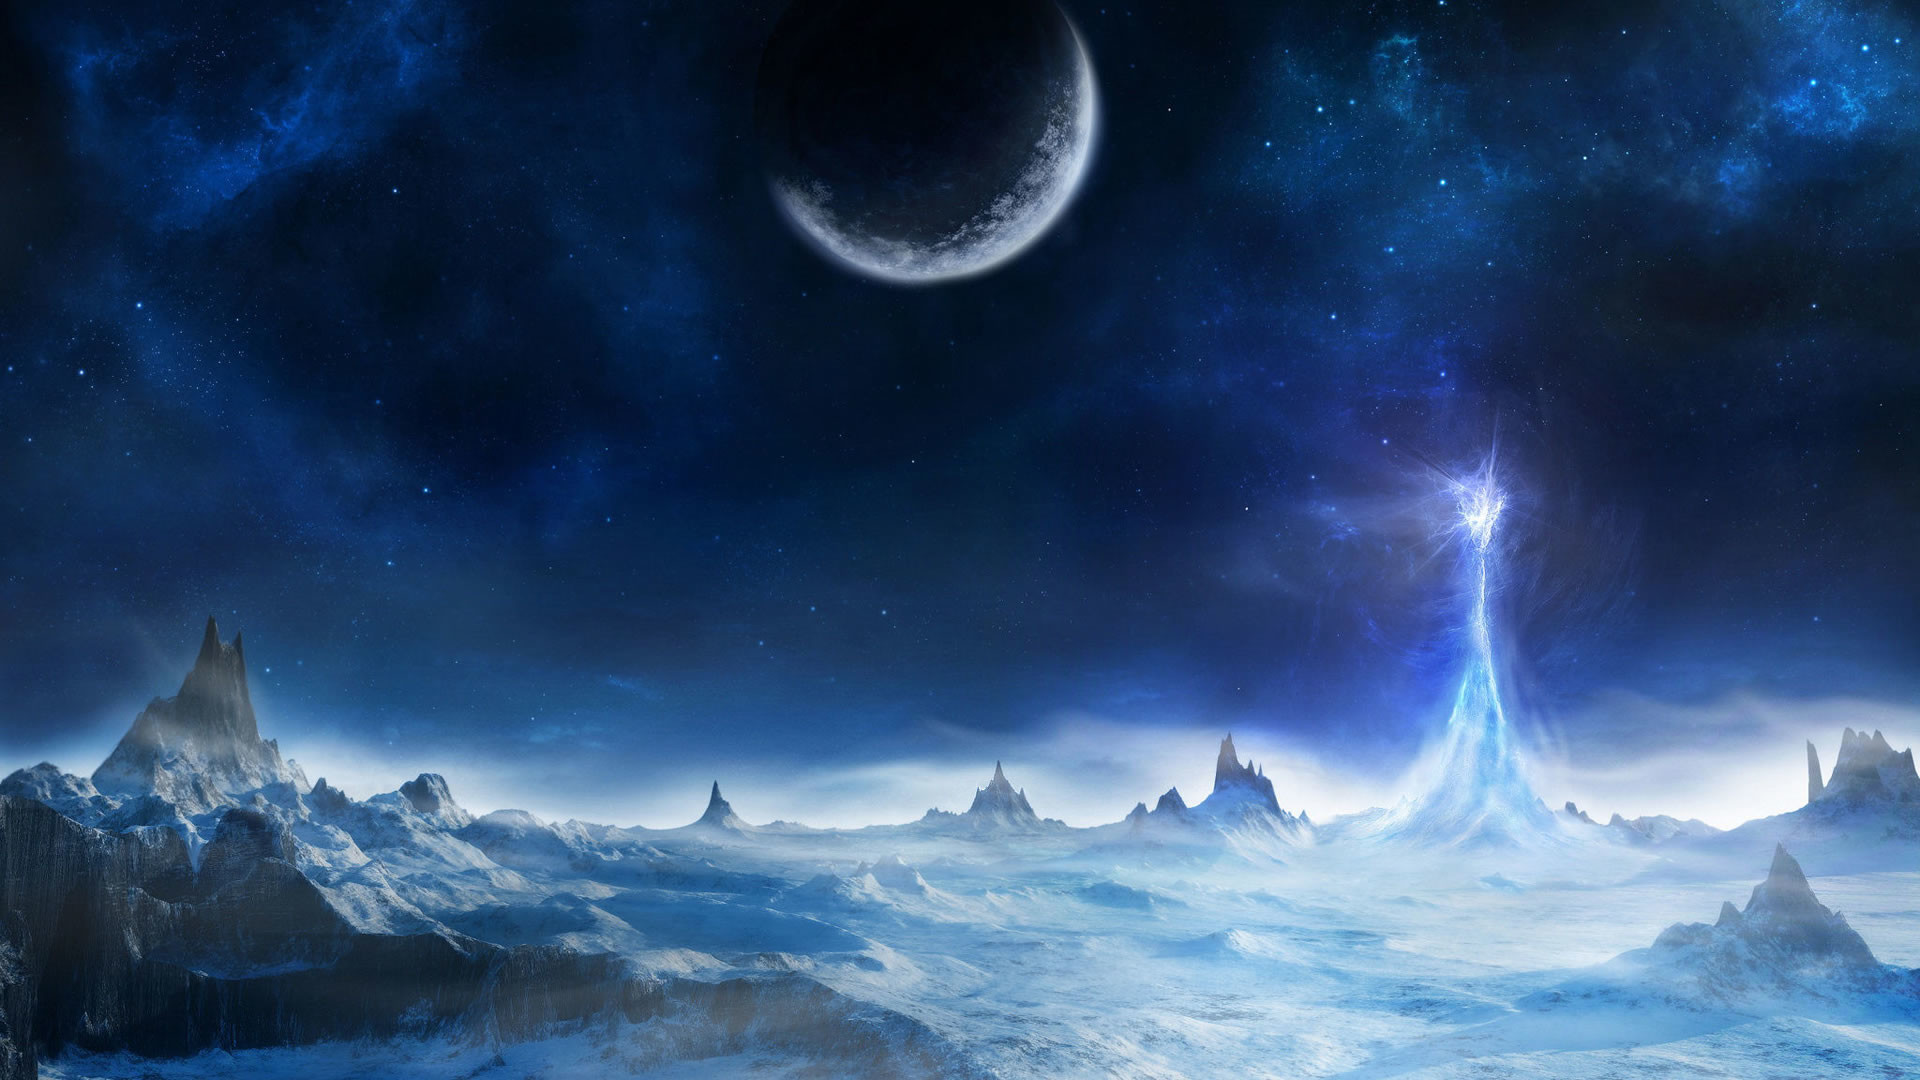 Res: 1920x1080, Cool Fantasy Wallpapers 38458